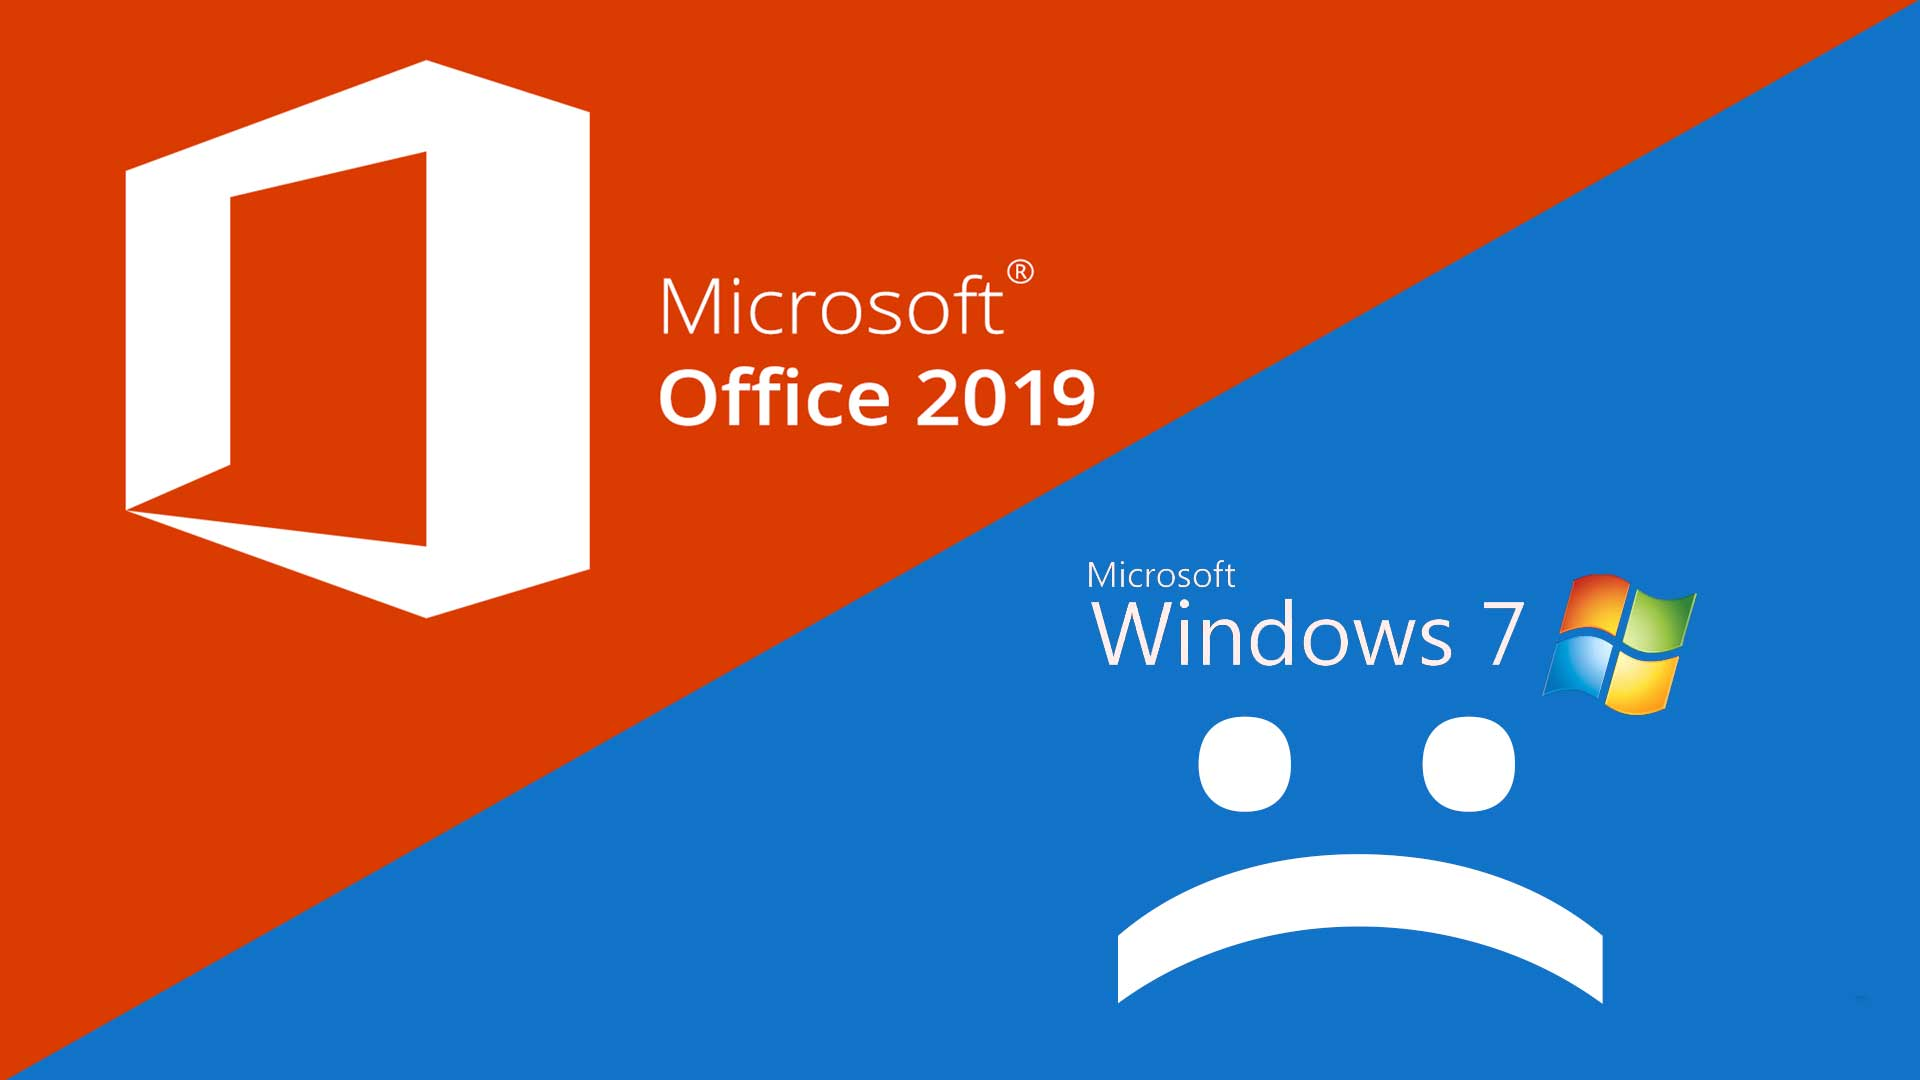 Microsoft Office Windows 7 Microsoft Office 2019 Leaving Old Windows Behind Pit Crew It